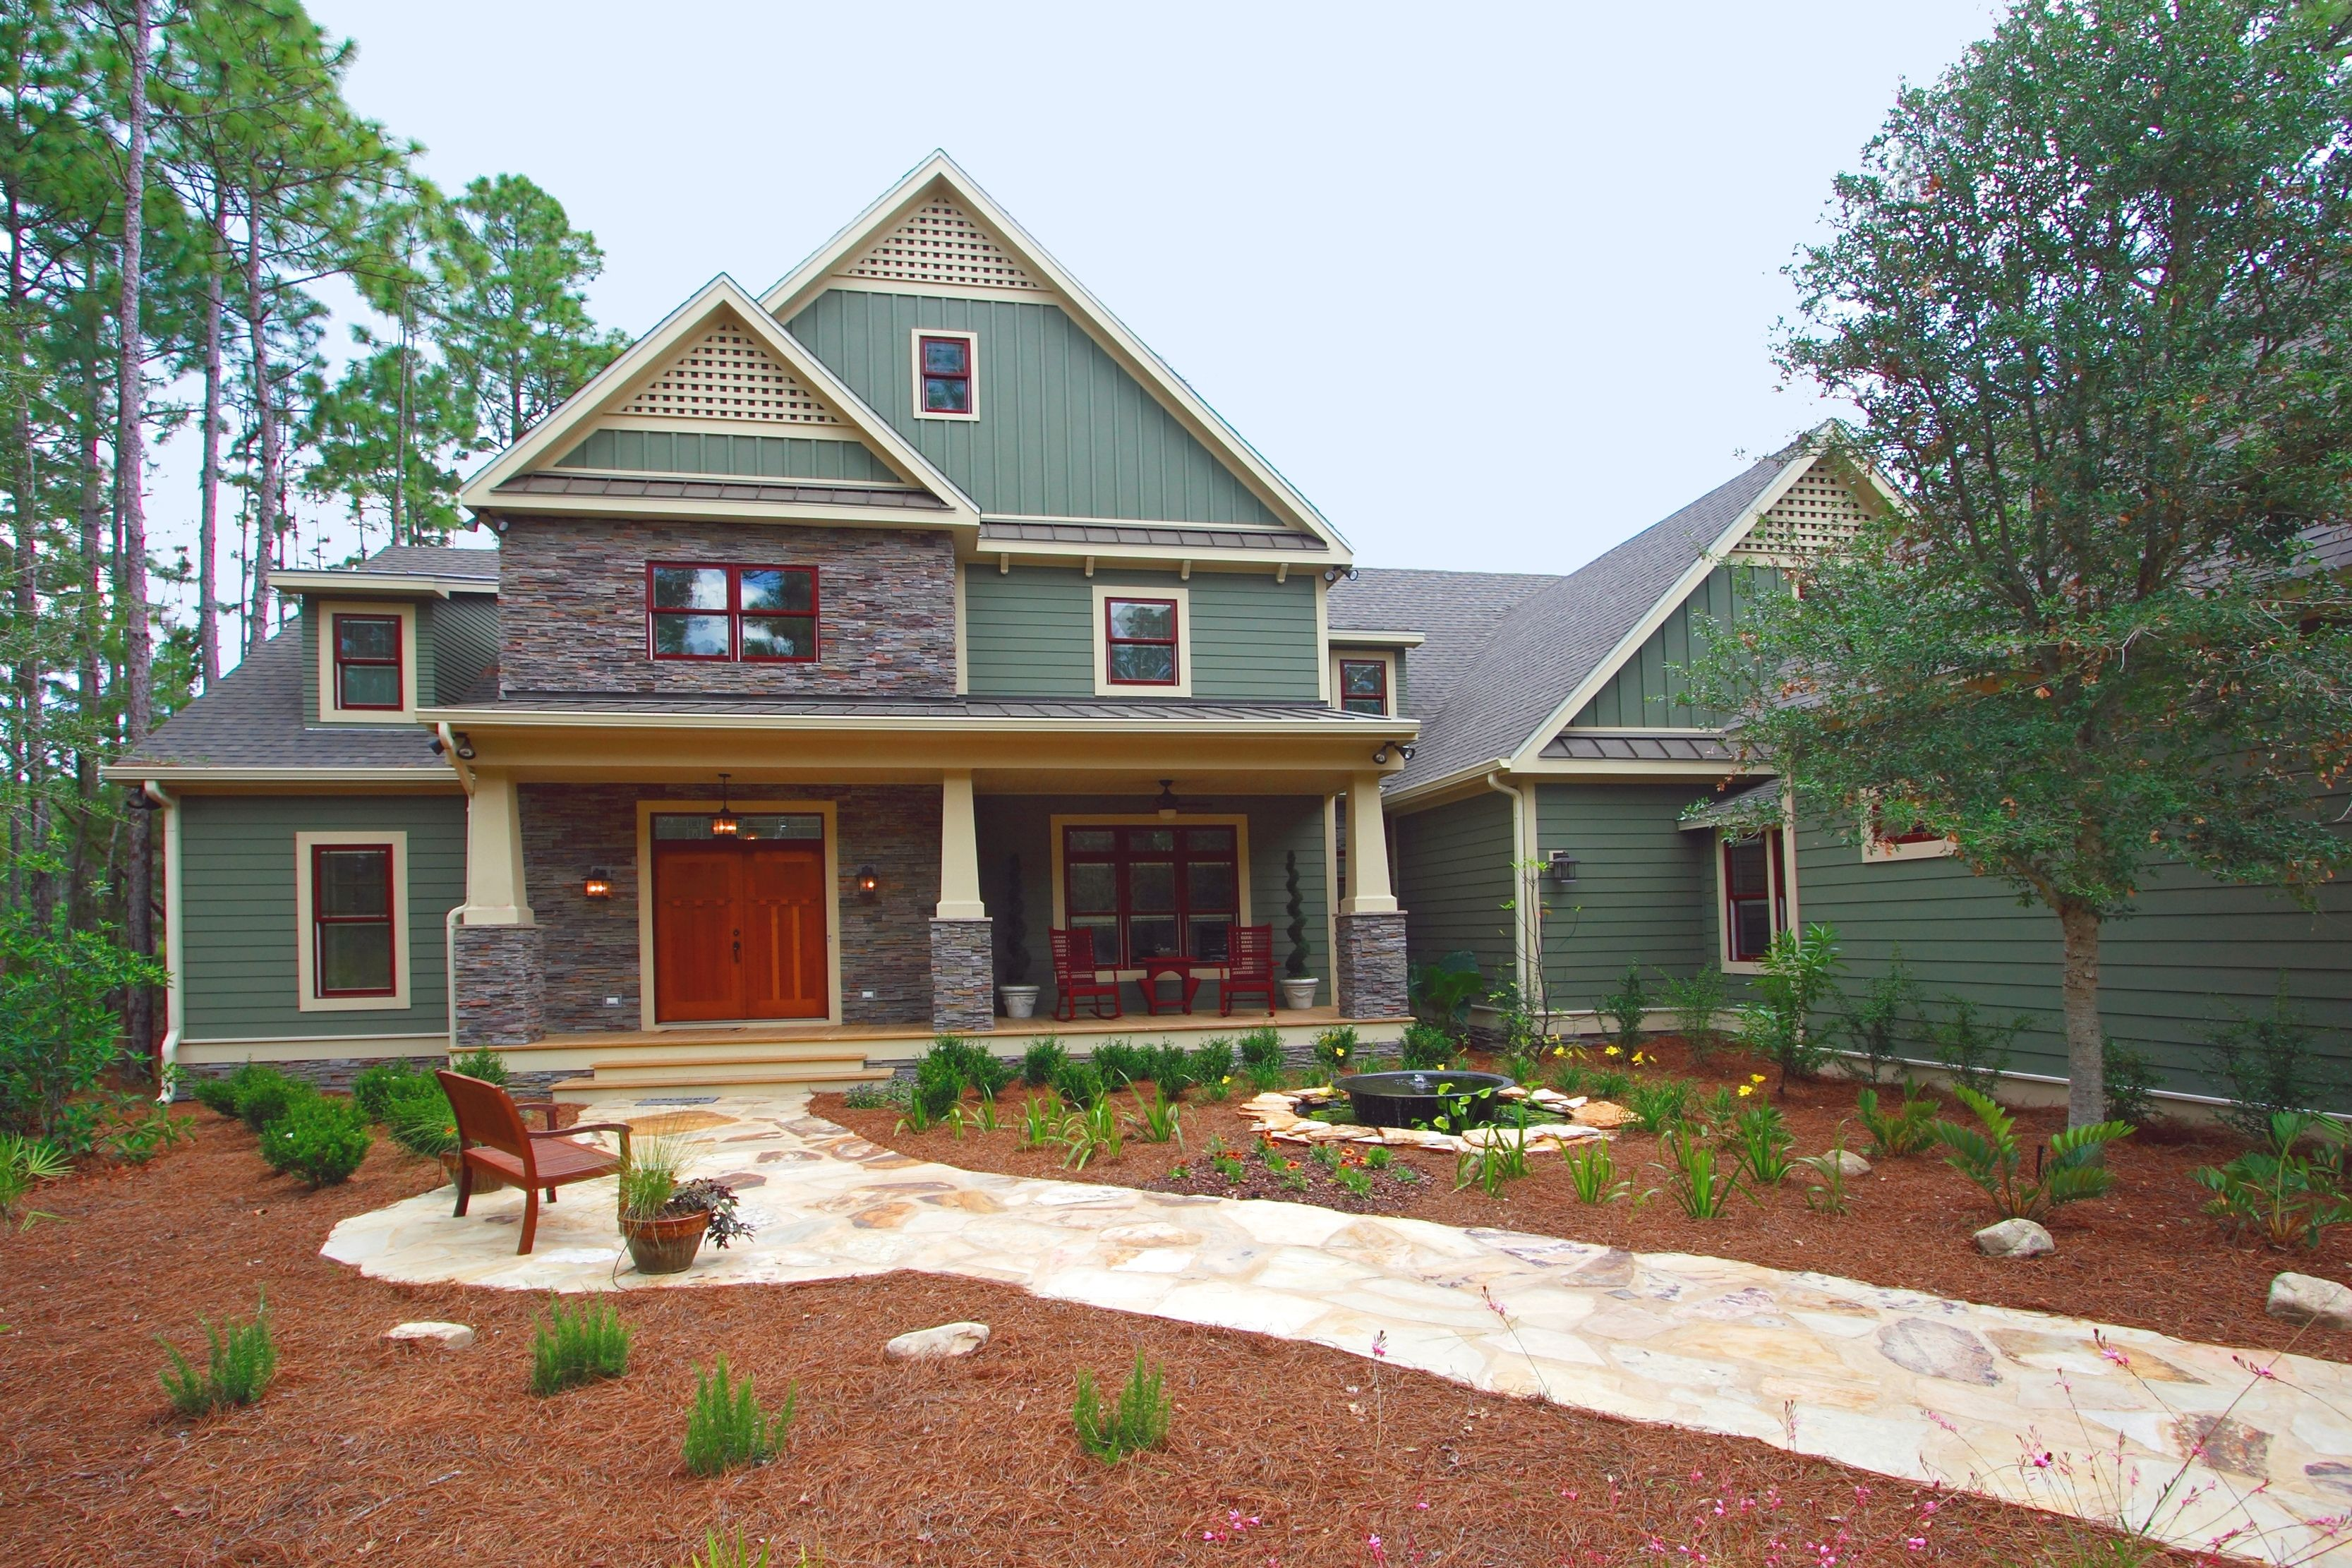 Excellent House Ideas For Building Concept Modular homes